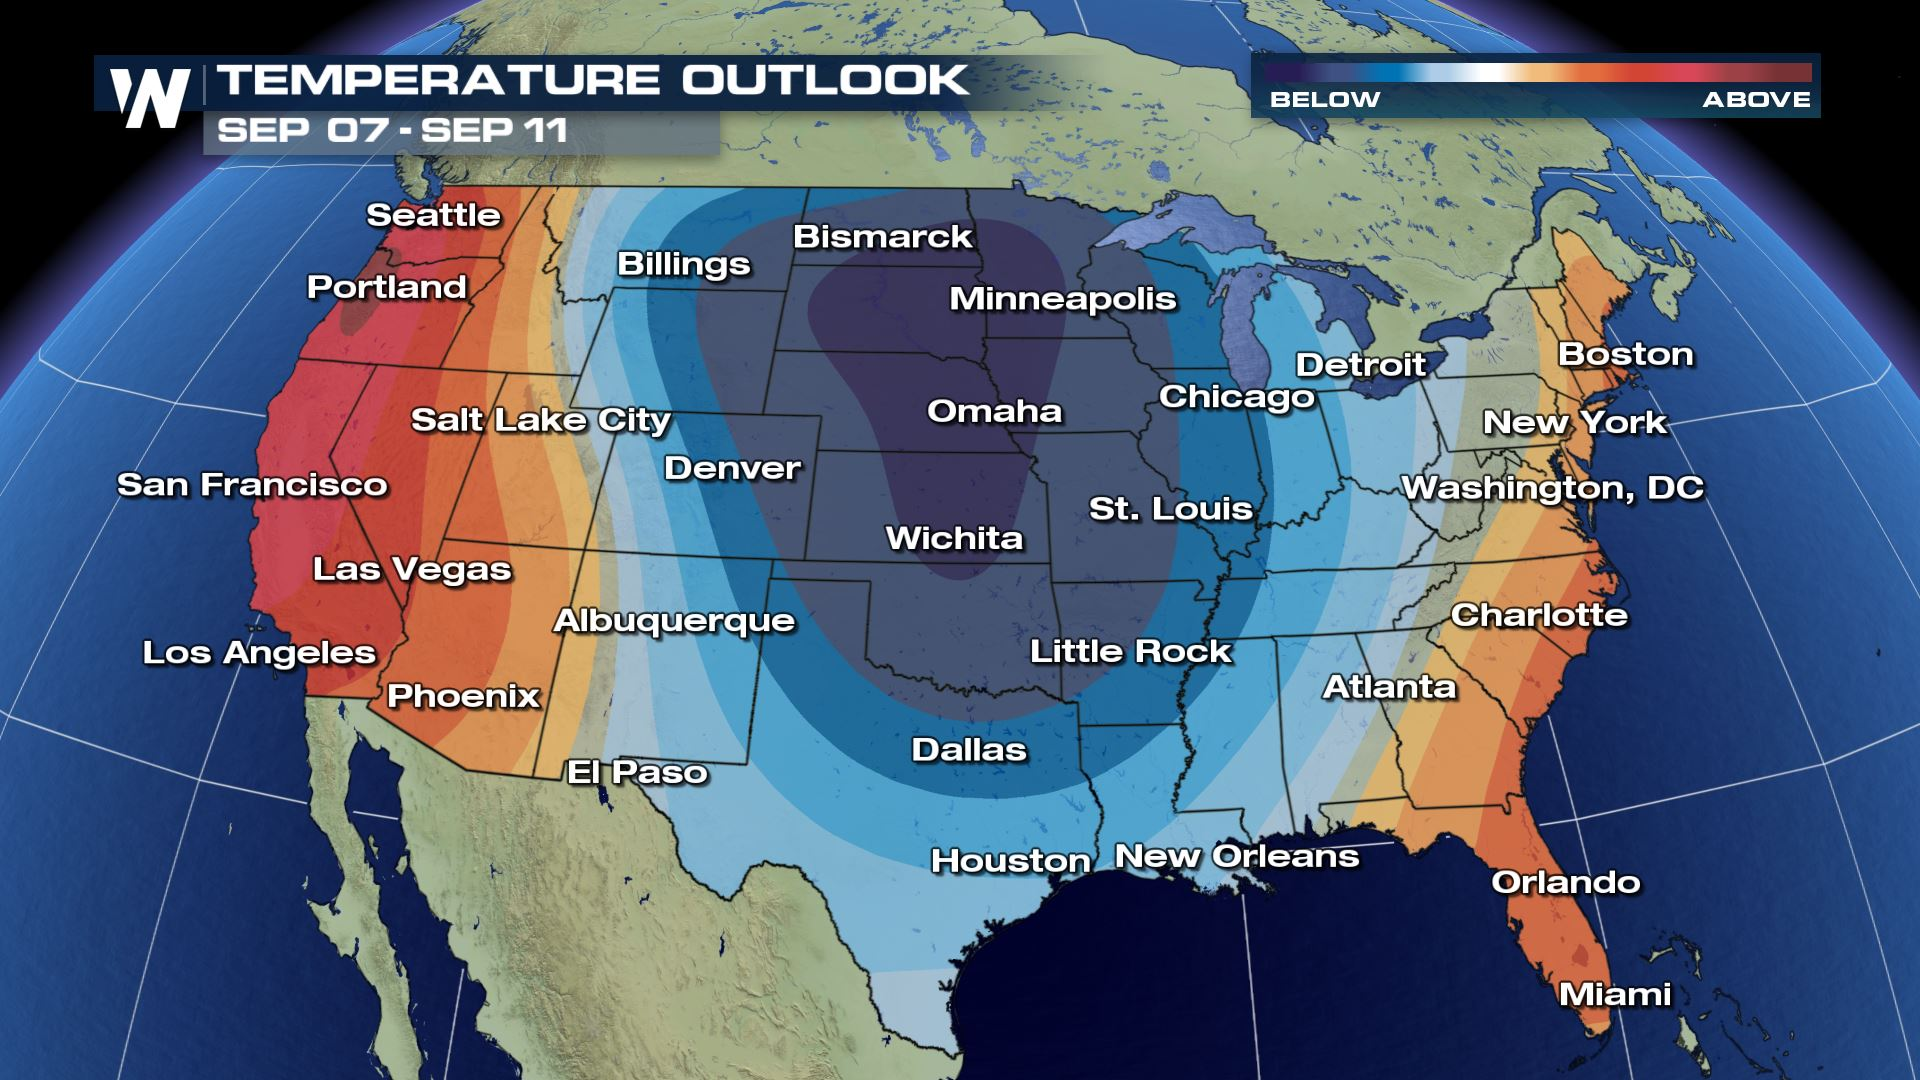 Fall-Like Conditions on the way for the Central US